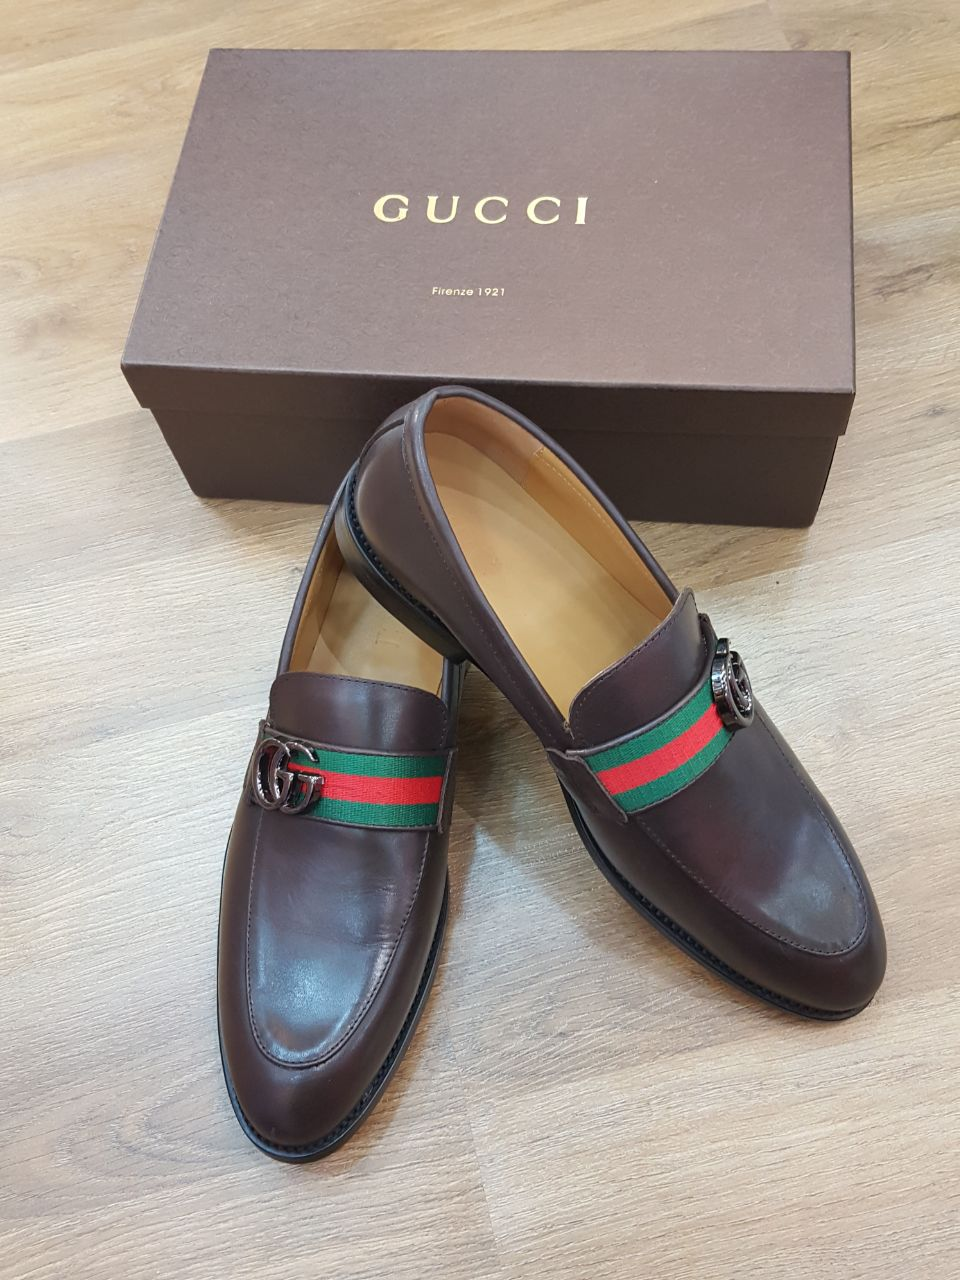 3e010da4e5 Gucci Men Shoes Full Brown Color